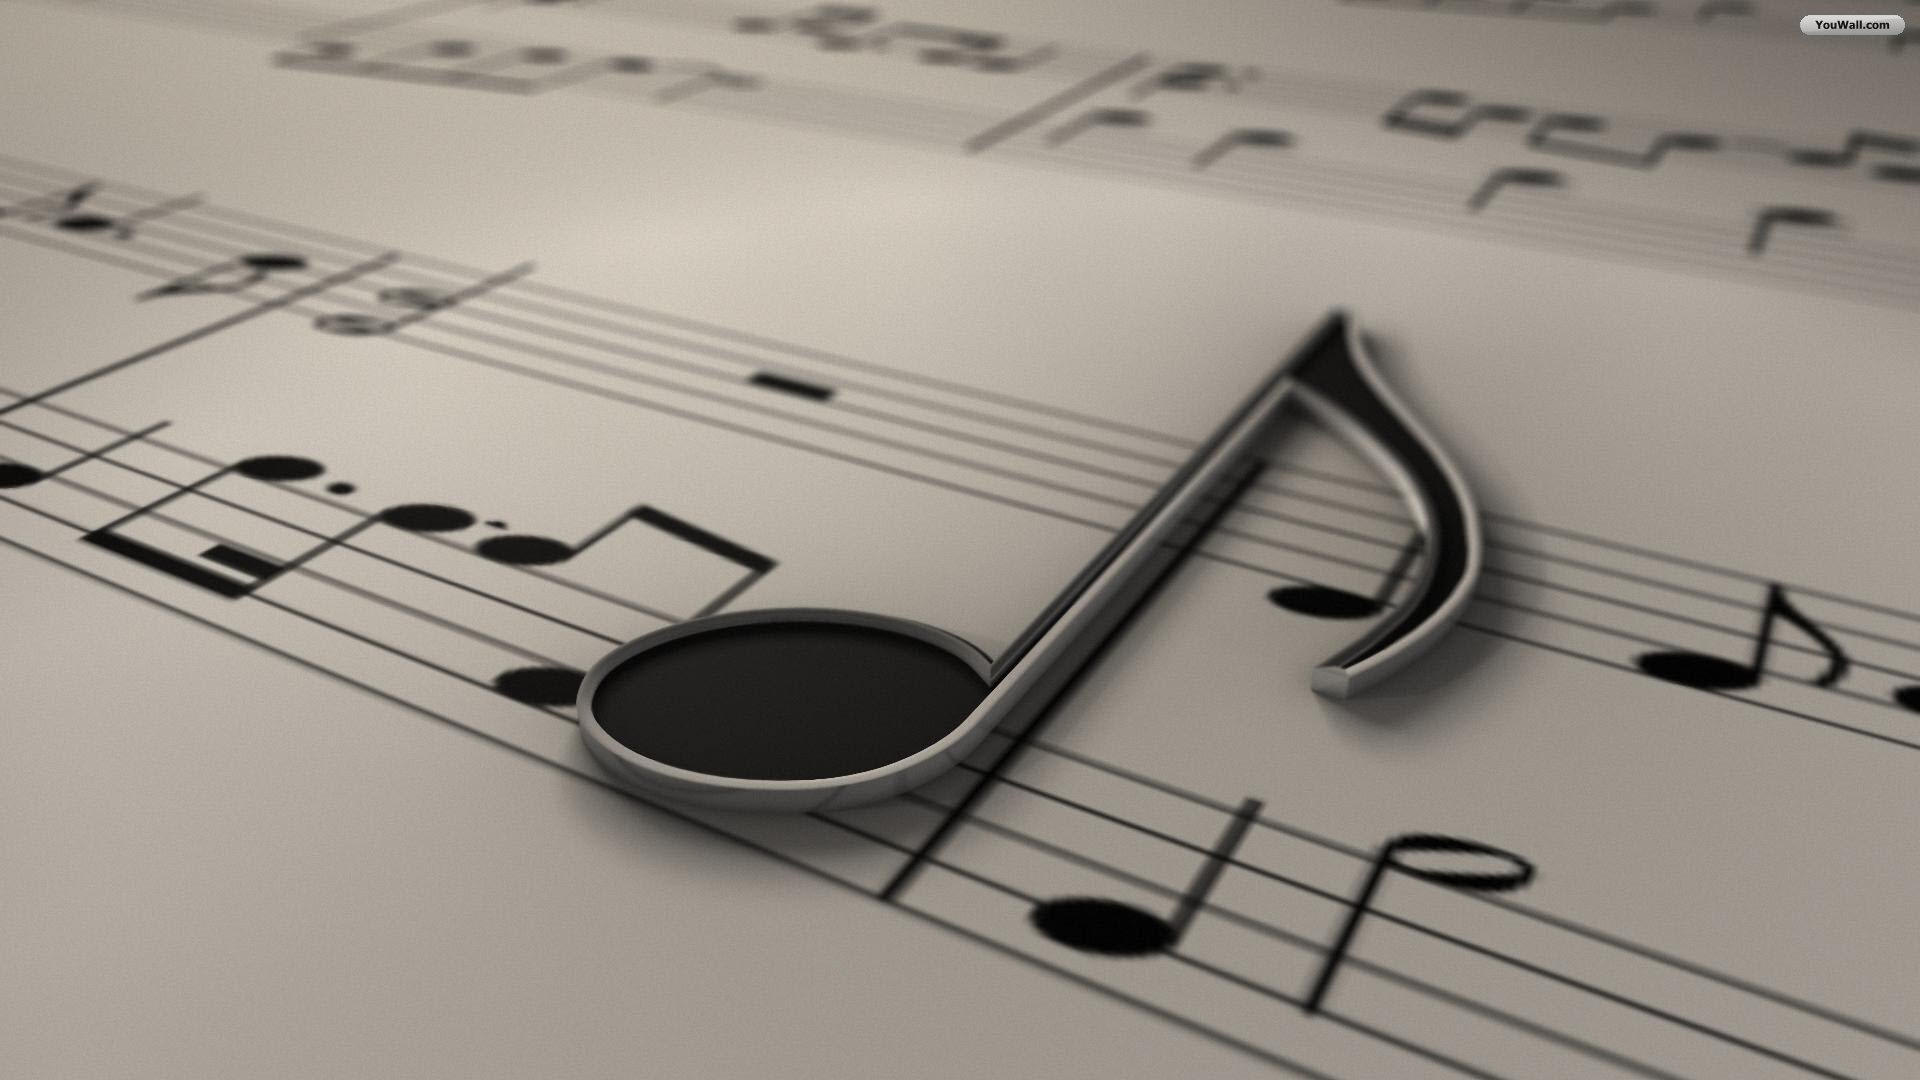 Music wallpaper 1920x1080 36977